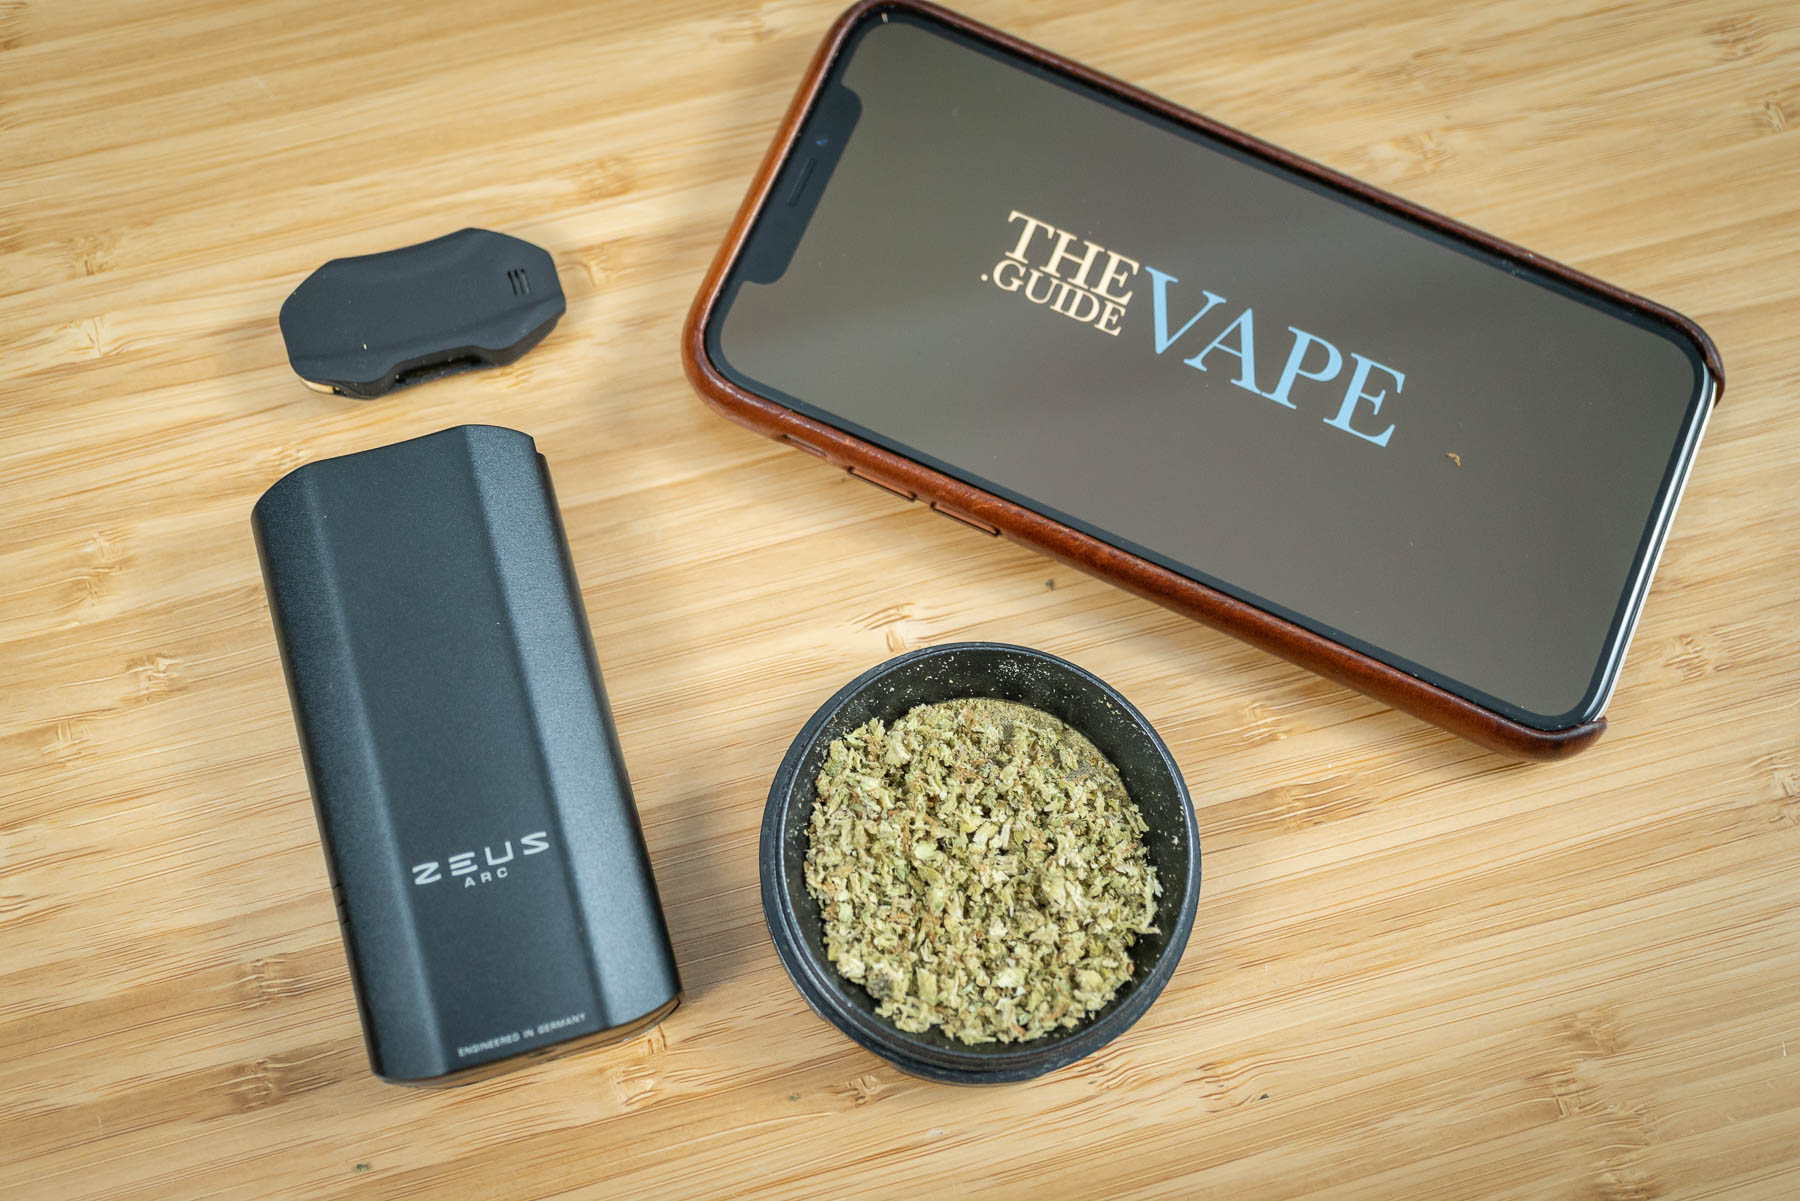 Do Vaporizers Smell like Weed?